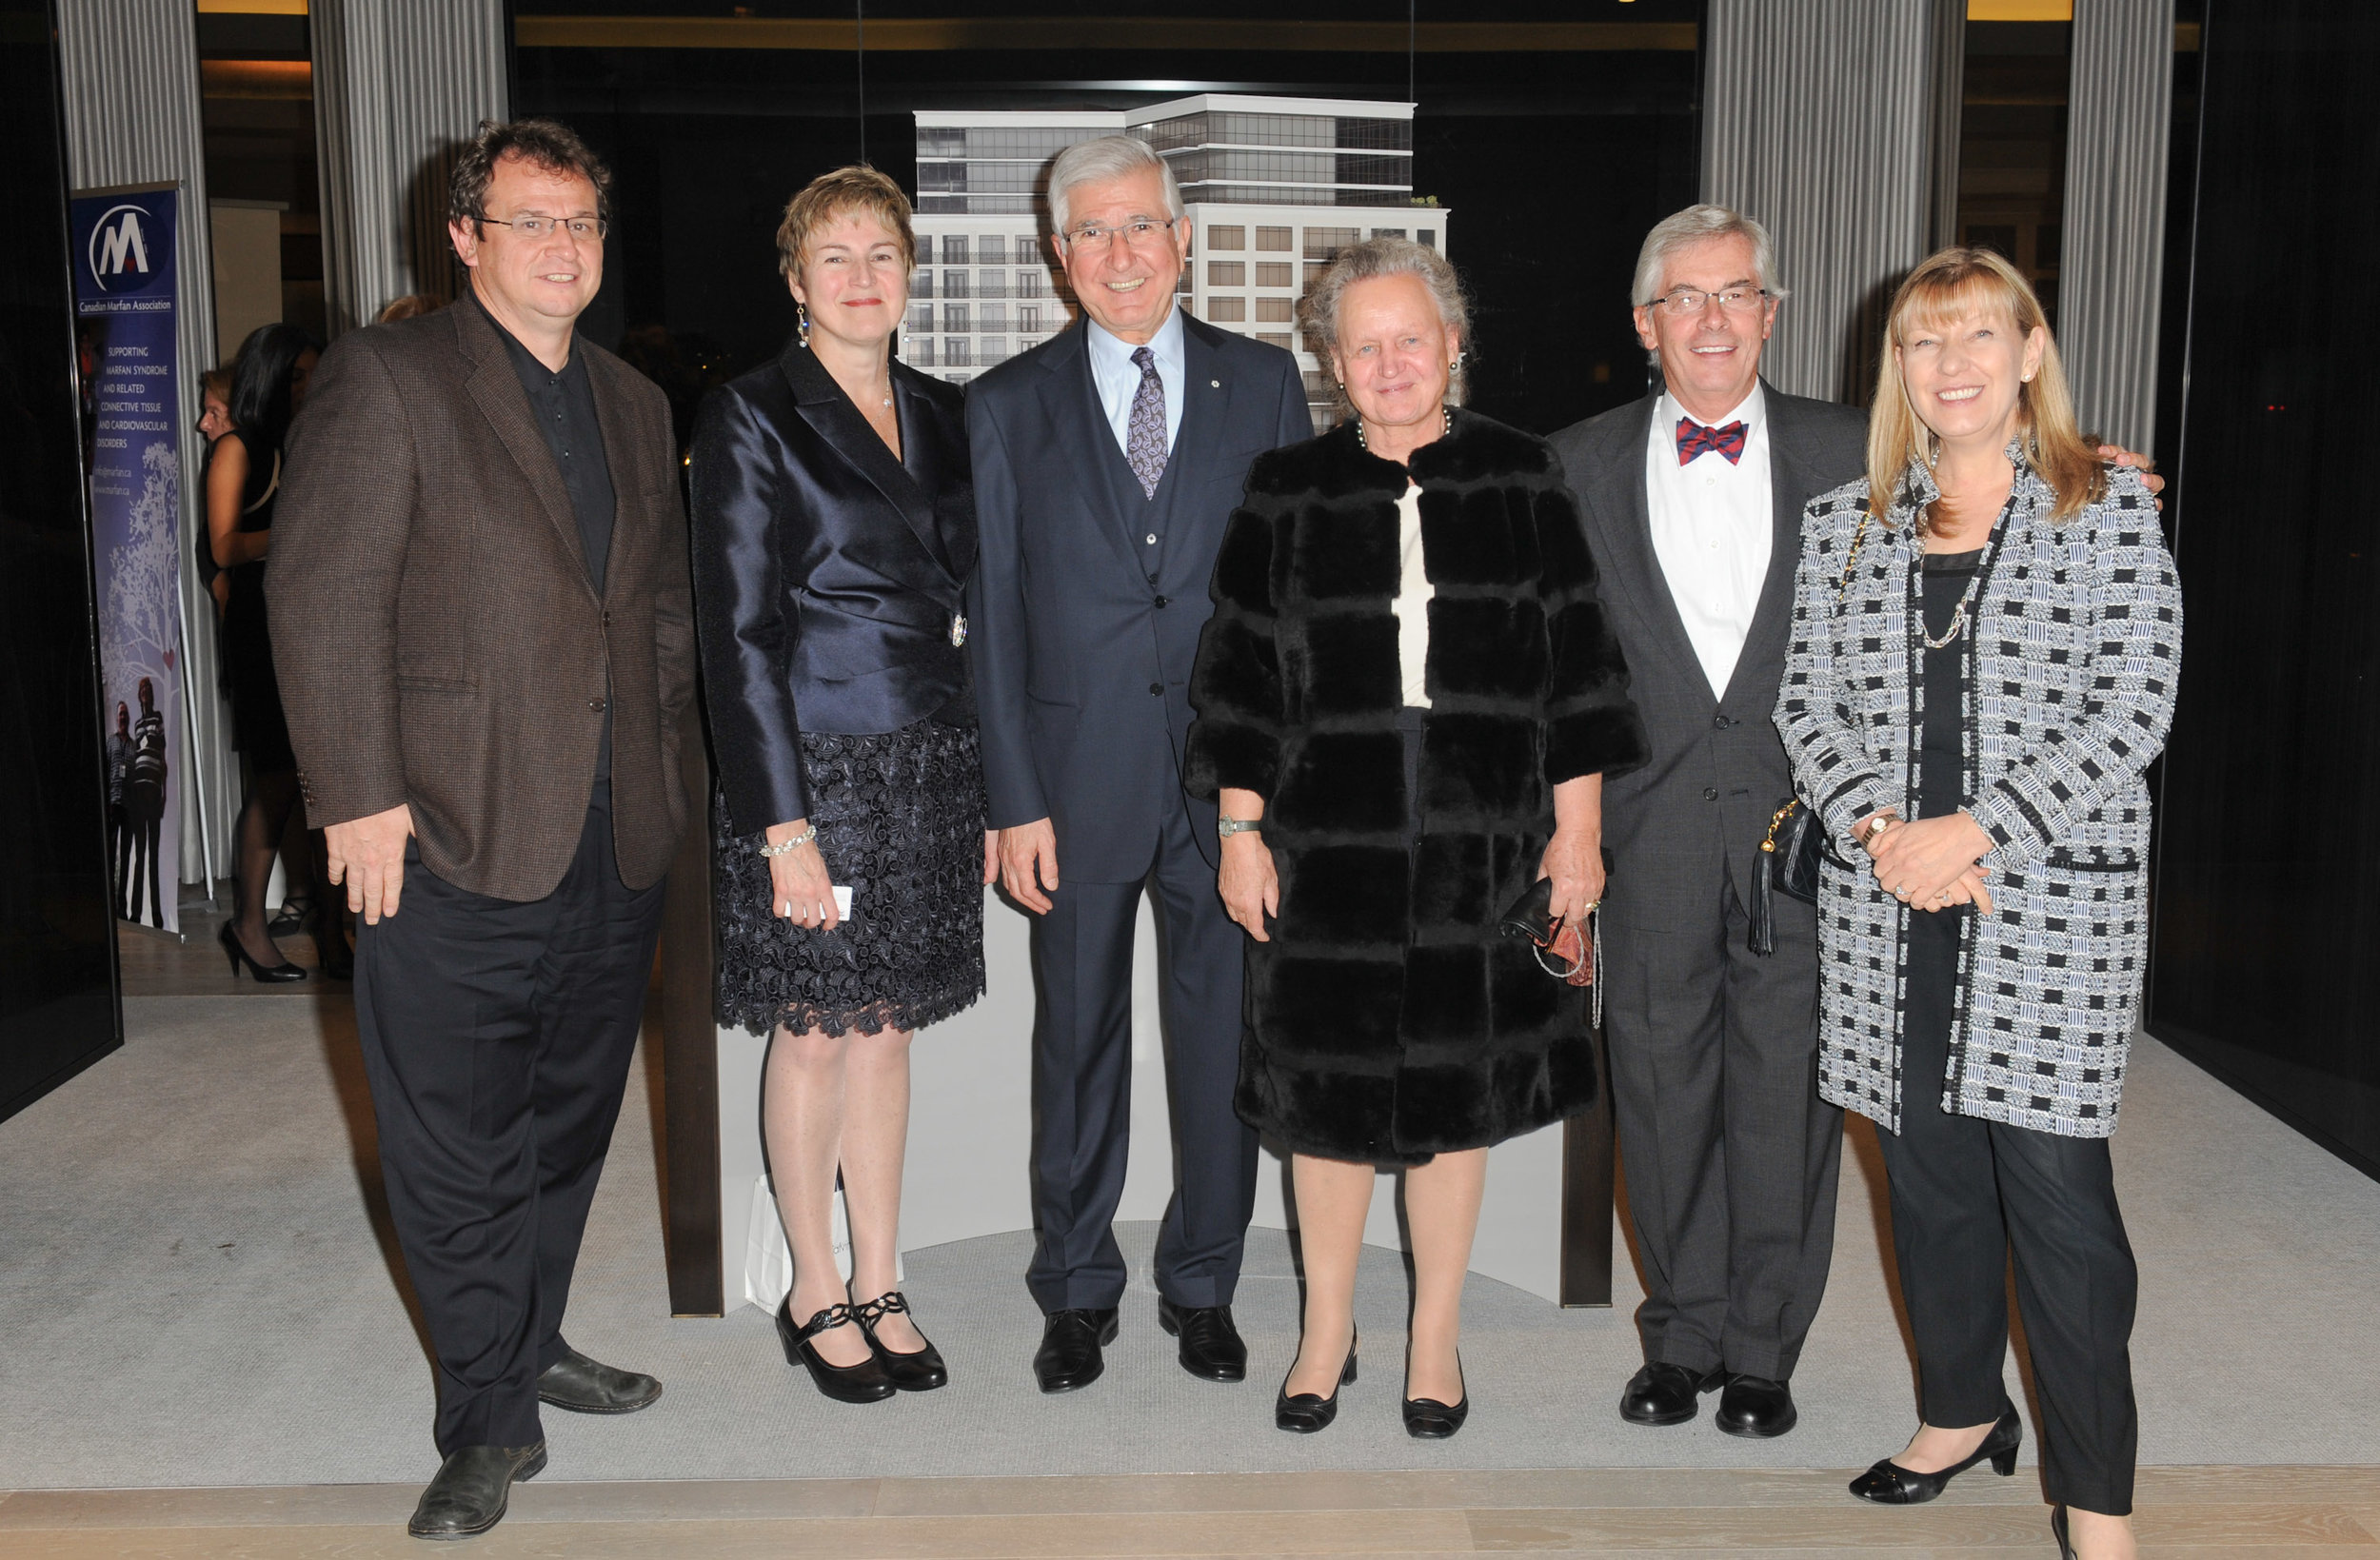 Left to right: Dr. Tim Bradley, Dr. Nanette Alvarez, Dr. Tirone E. David, Dr. Irene Maumenee, Dr. Reed E. Pyeritz and Dr. Dianna Milewicz